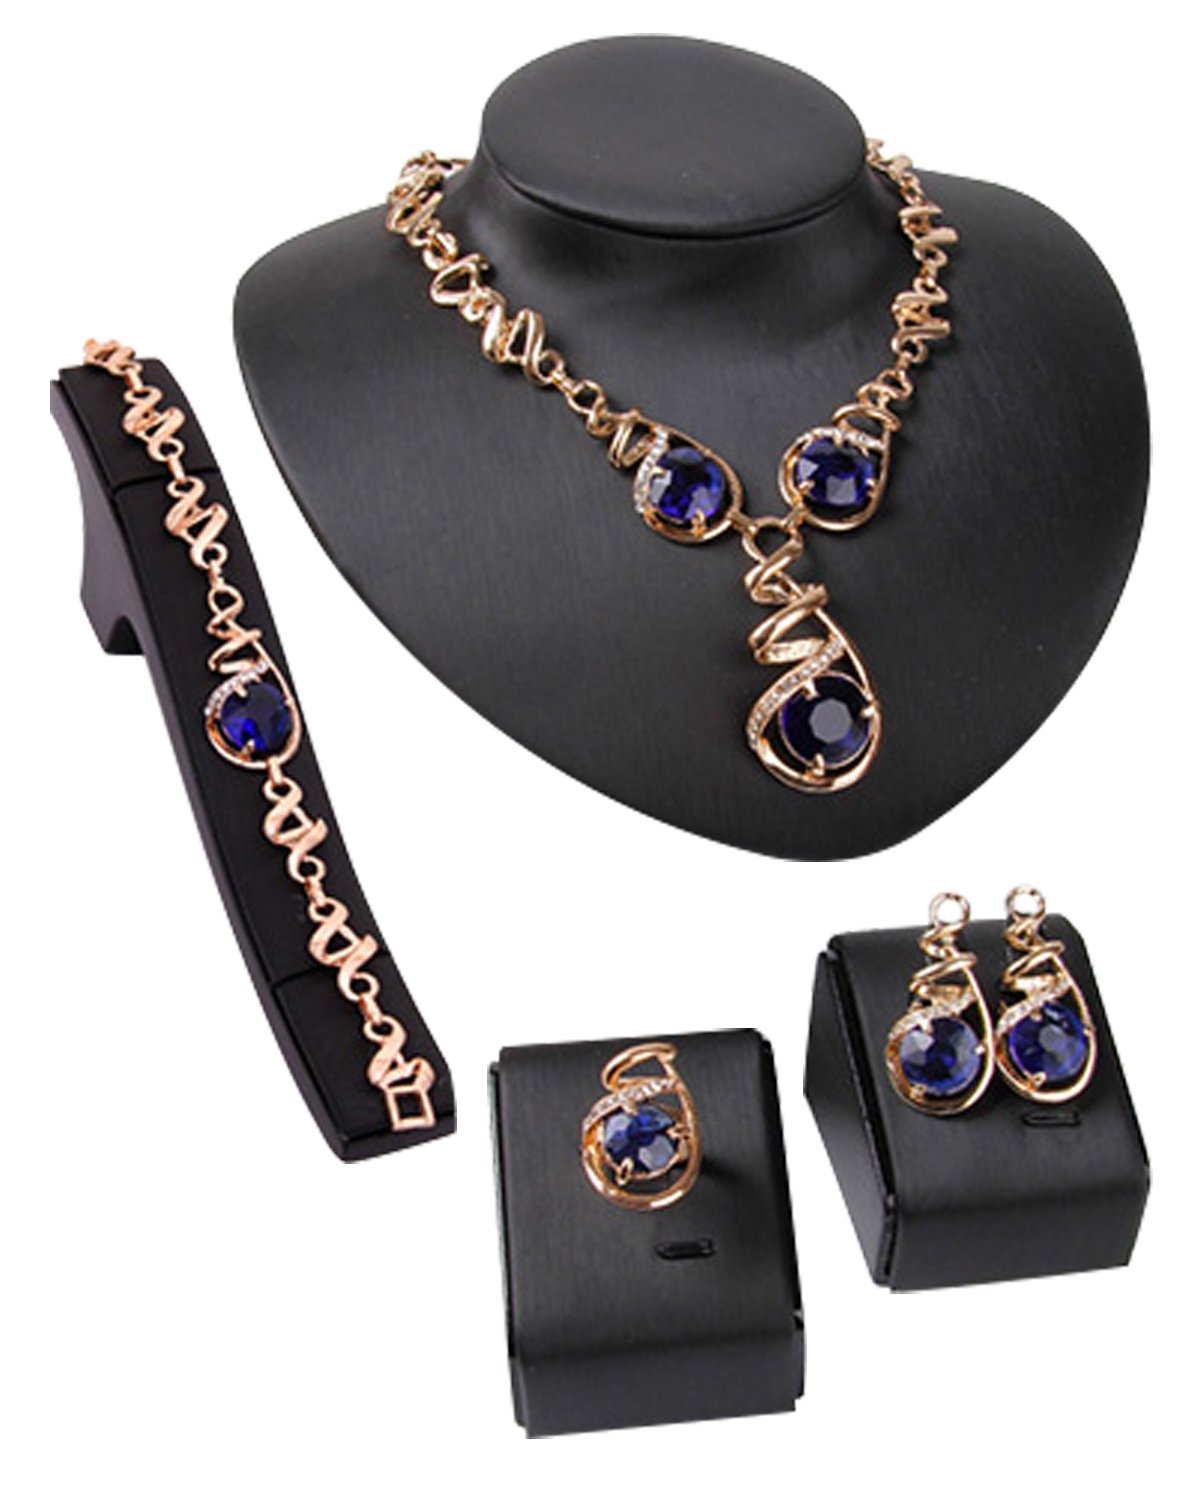 Young & Forever Elite Mesmerizing Prom Wedding Overgild Gold Plated Blue Crystal Jewelry Sets Necklace Earrings Bracelet Ring Set for Women / Girls stylish party wear N670